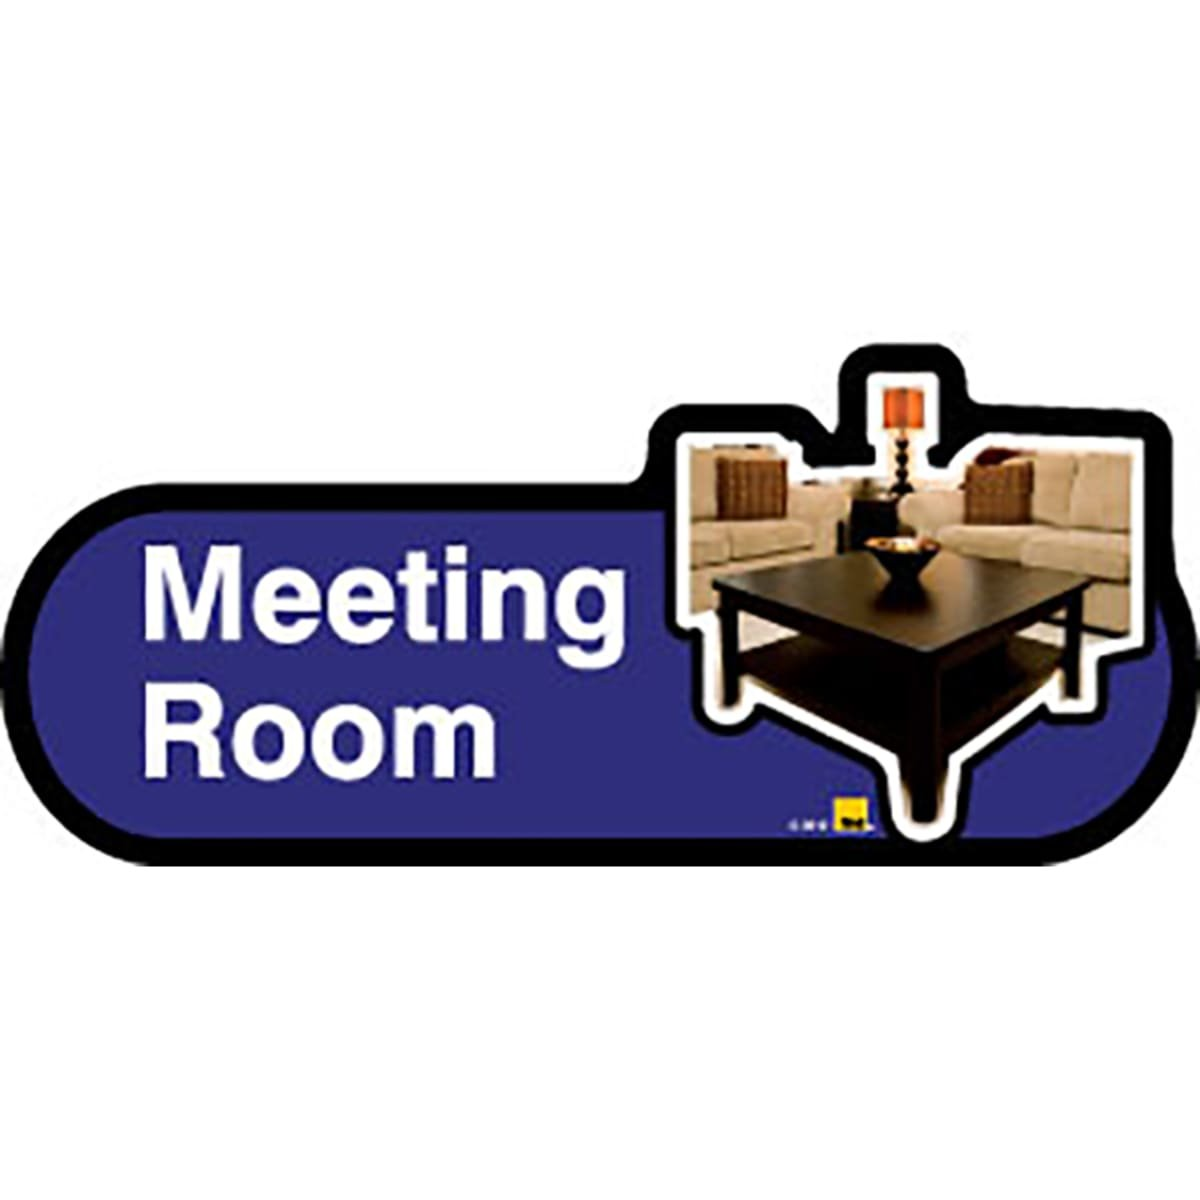 Dementia Friendly Meeting Room - Blue Sign -400mm Wide with Screw Fix by Dementia Friendly